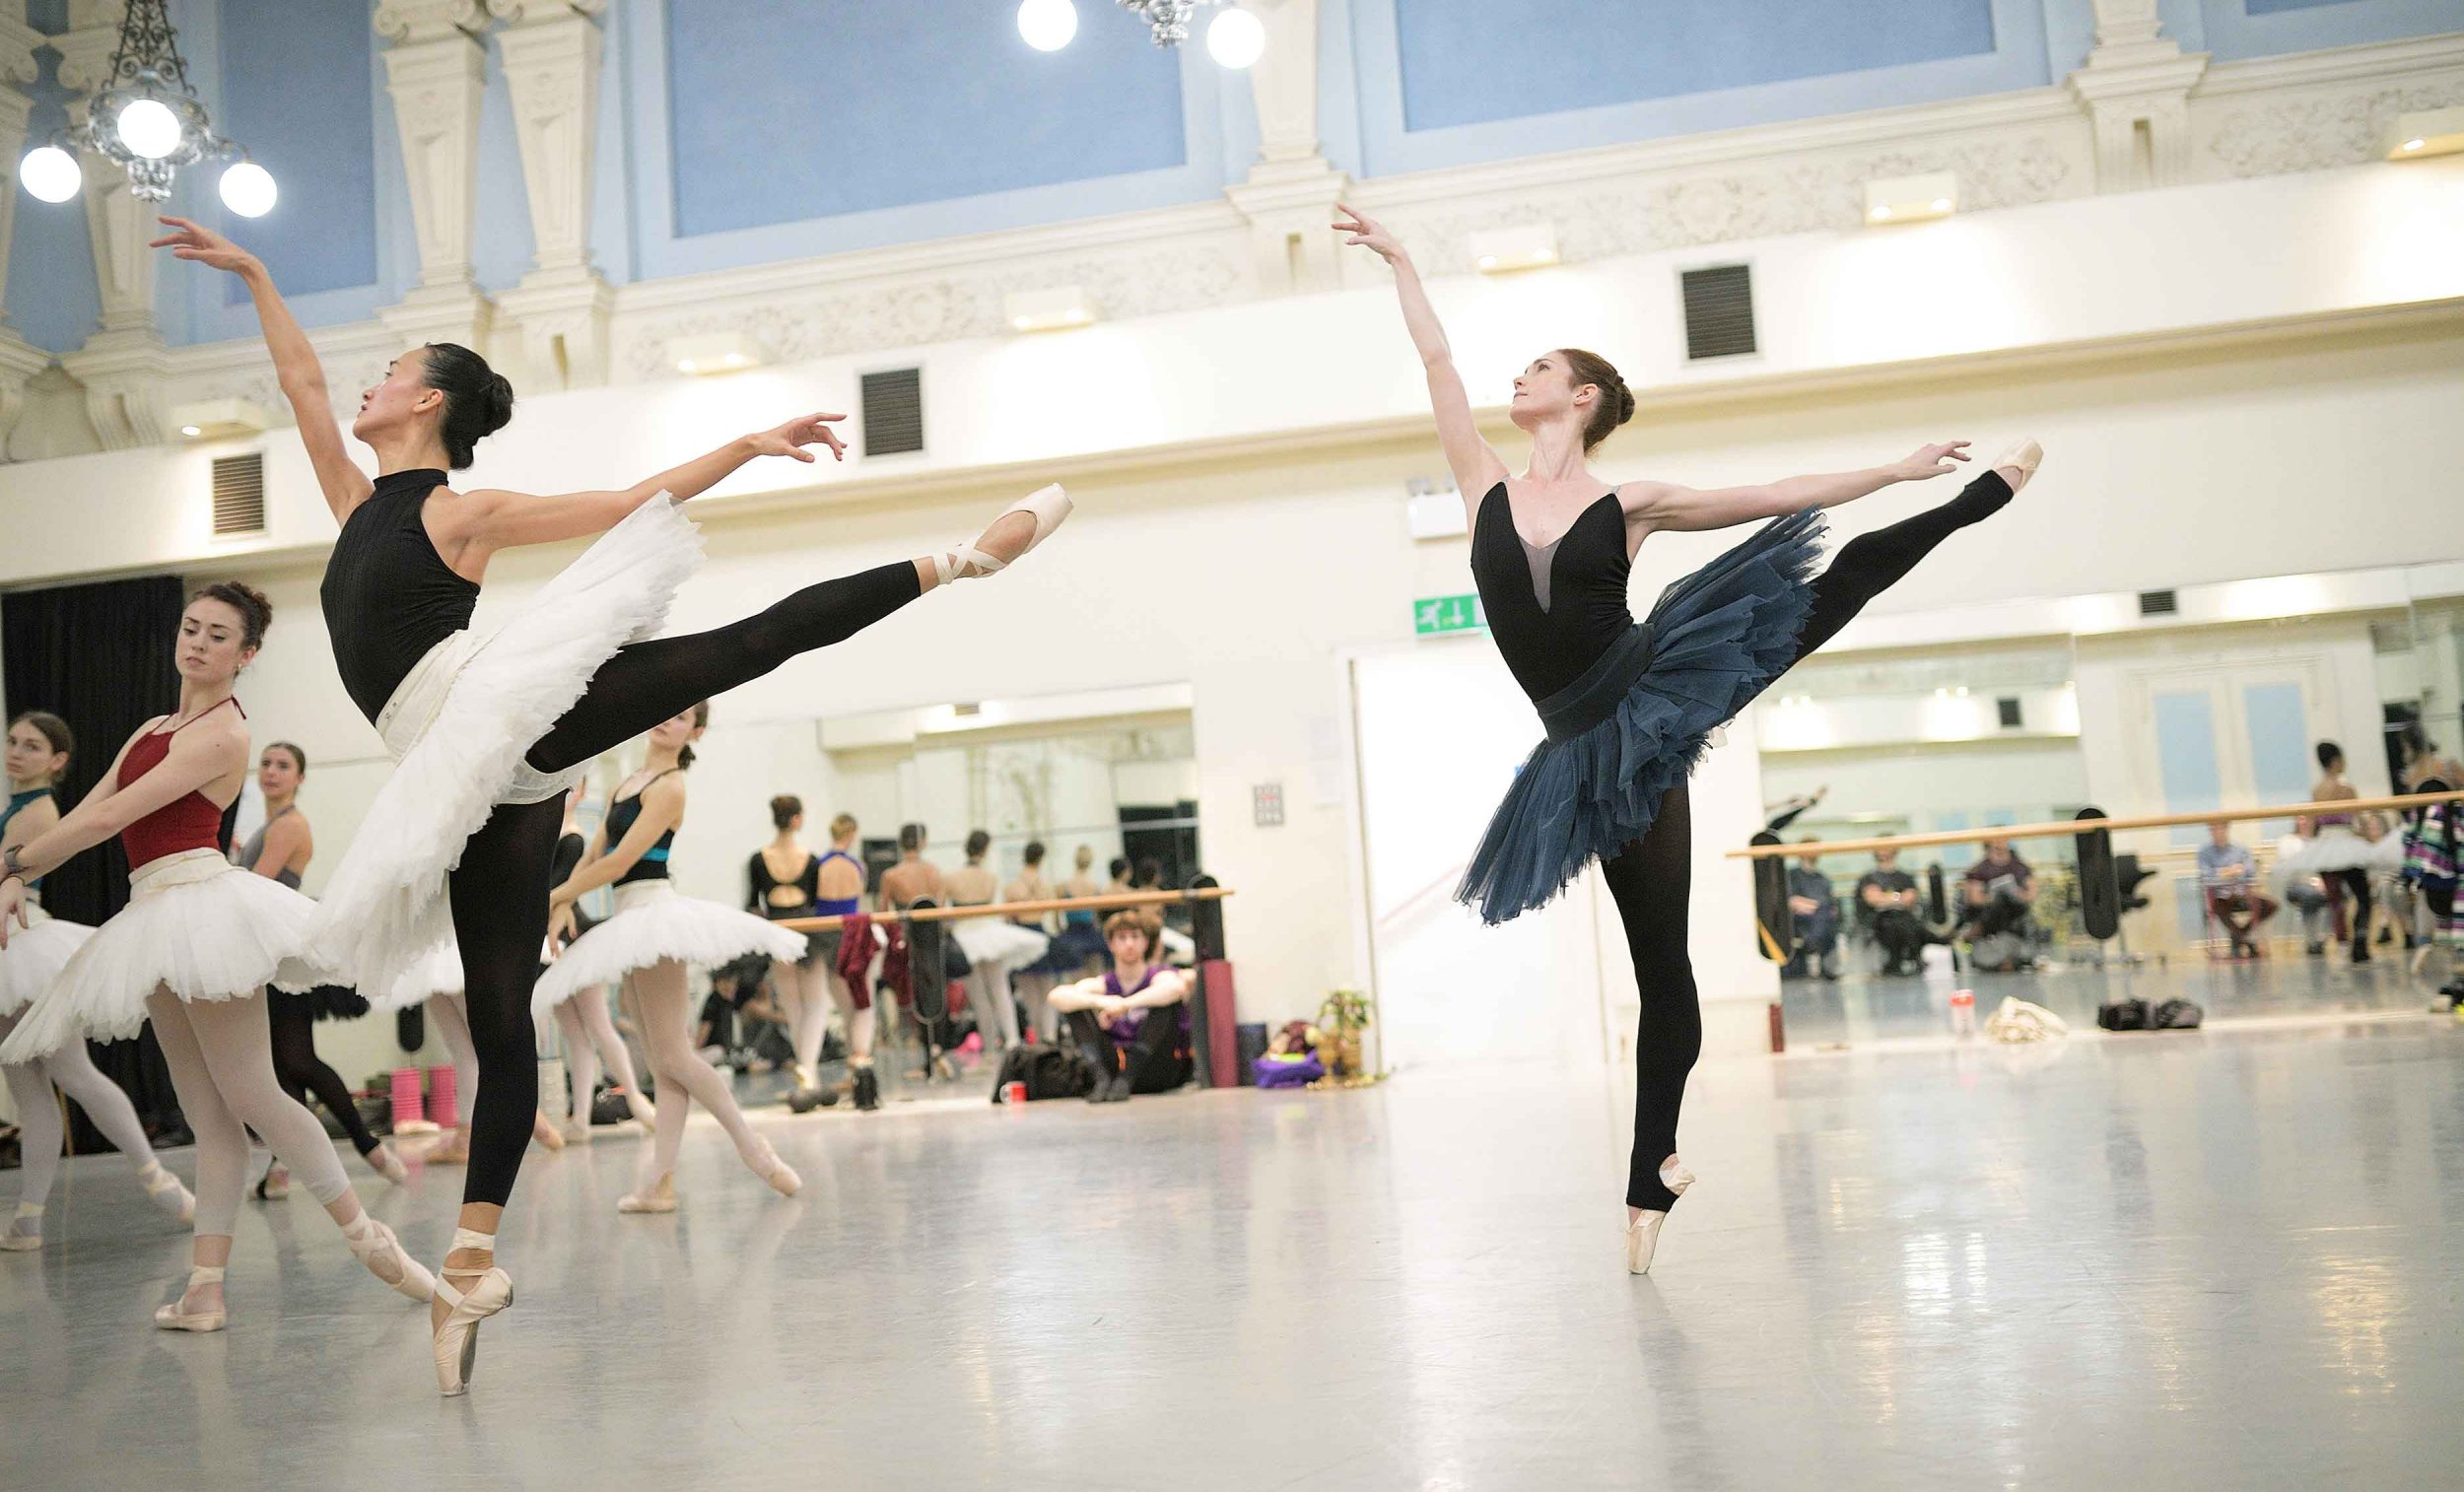 Jia-Zhang-and-Alison-McWhinney-in-rehearsals-for-Swan-Lake-(c)-Laurent-Liotardo-(2)_web